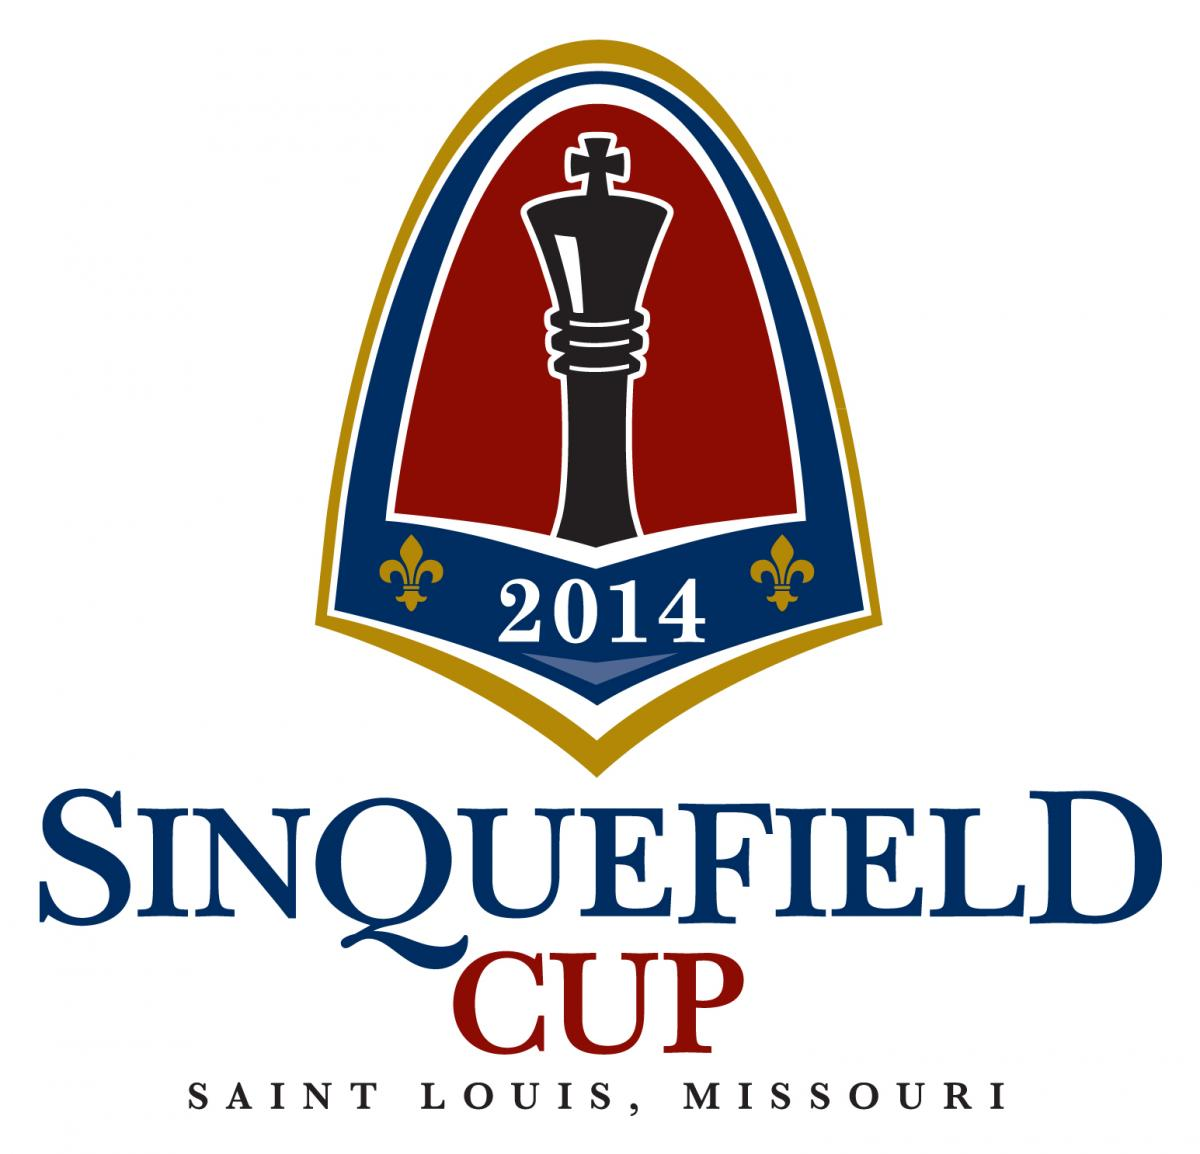 Sinq%20Cup%20logo%20with%20space.jpg